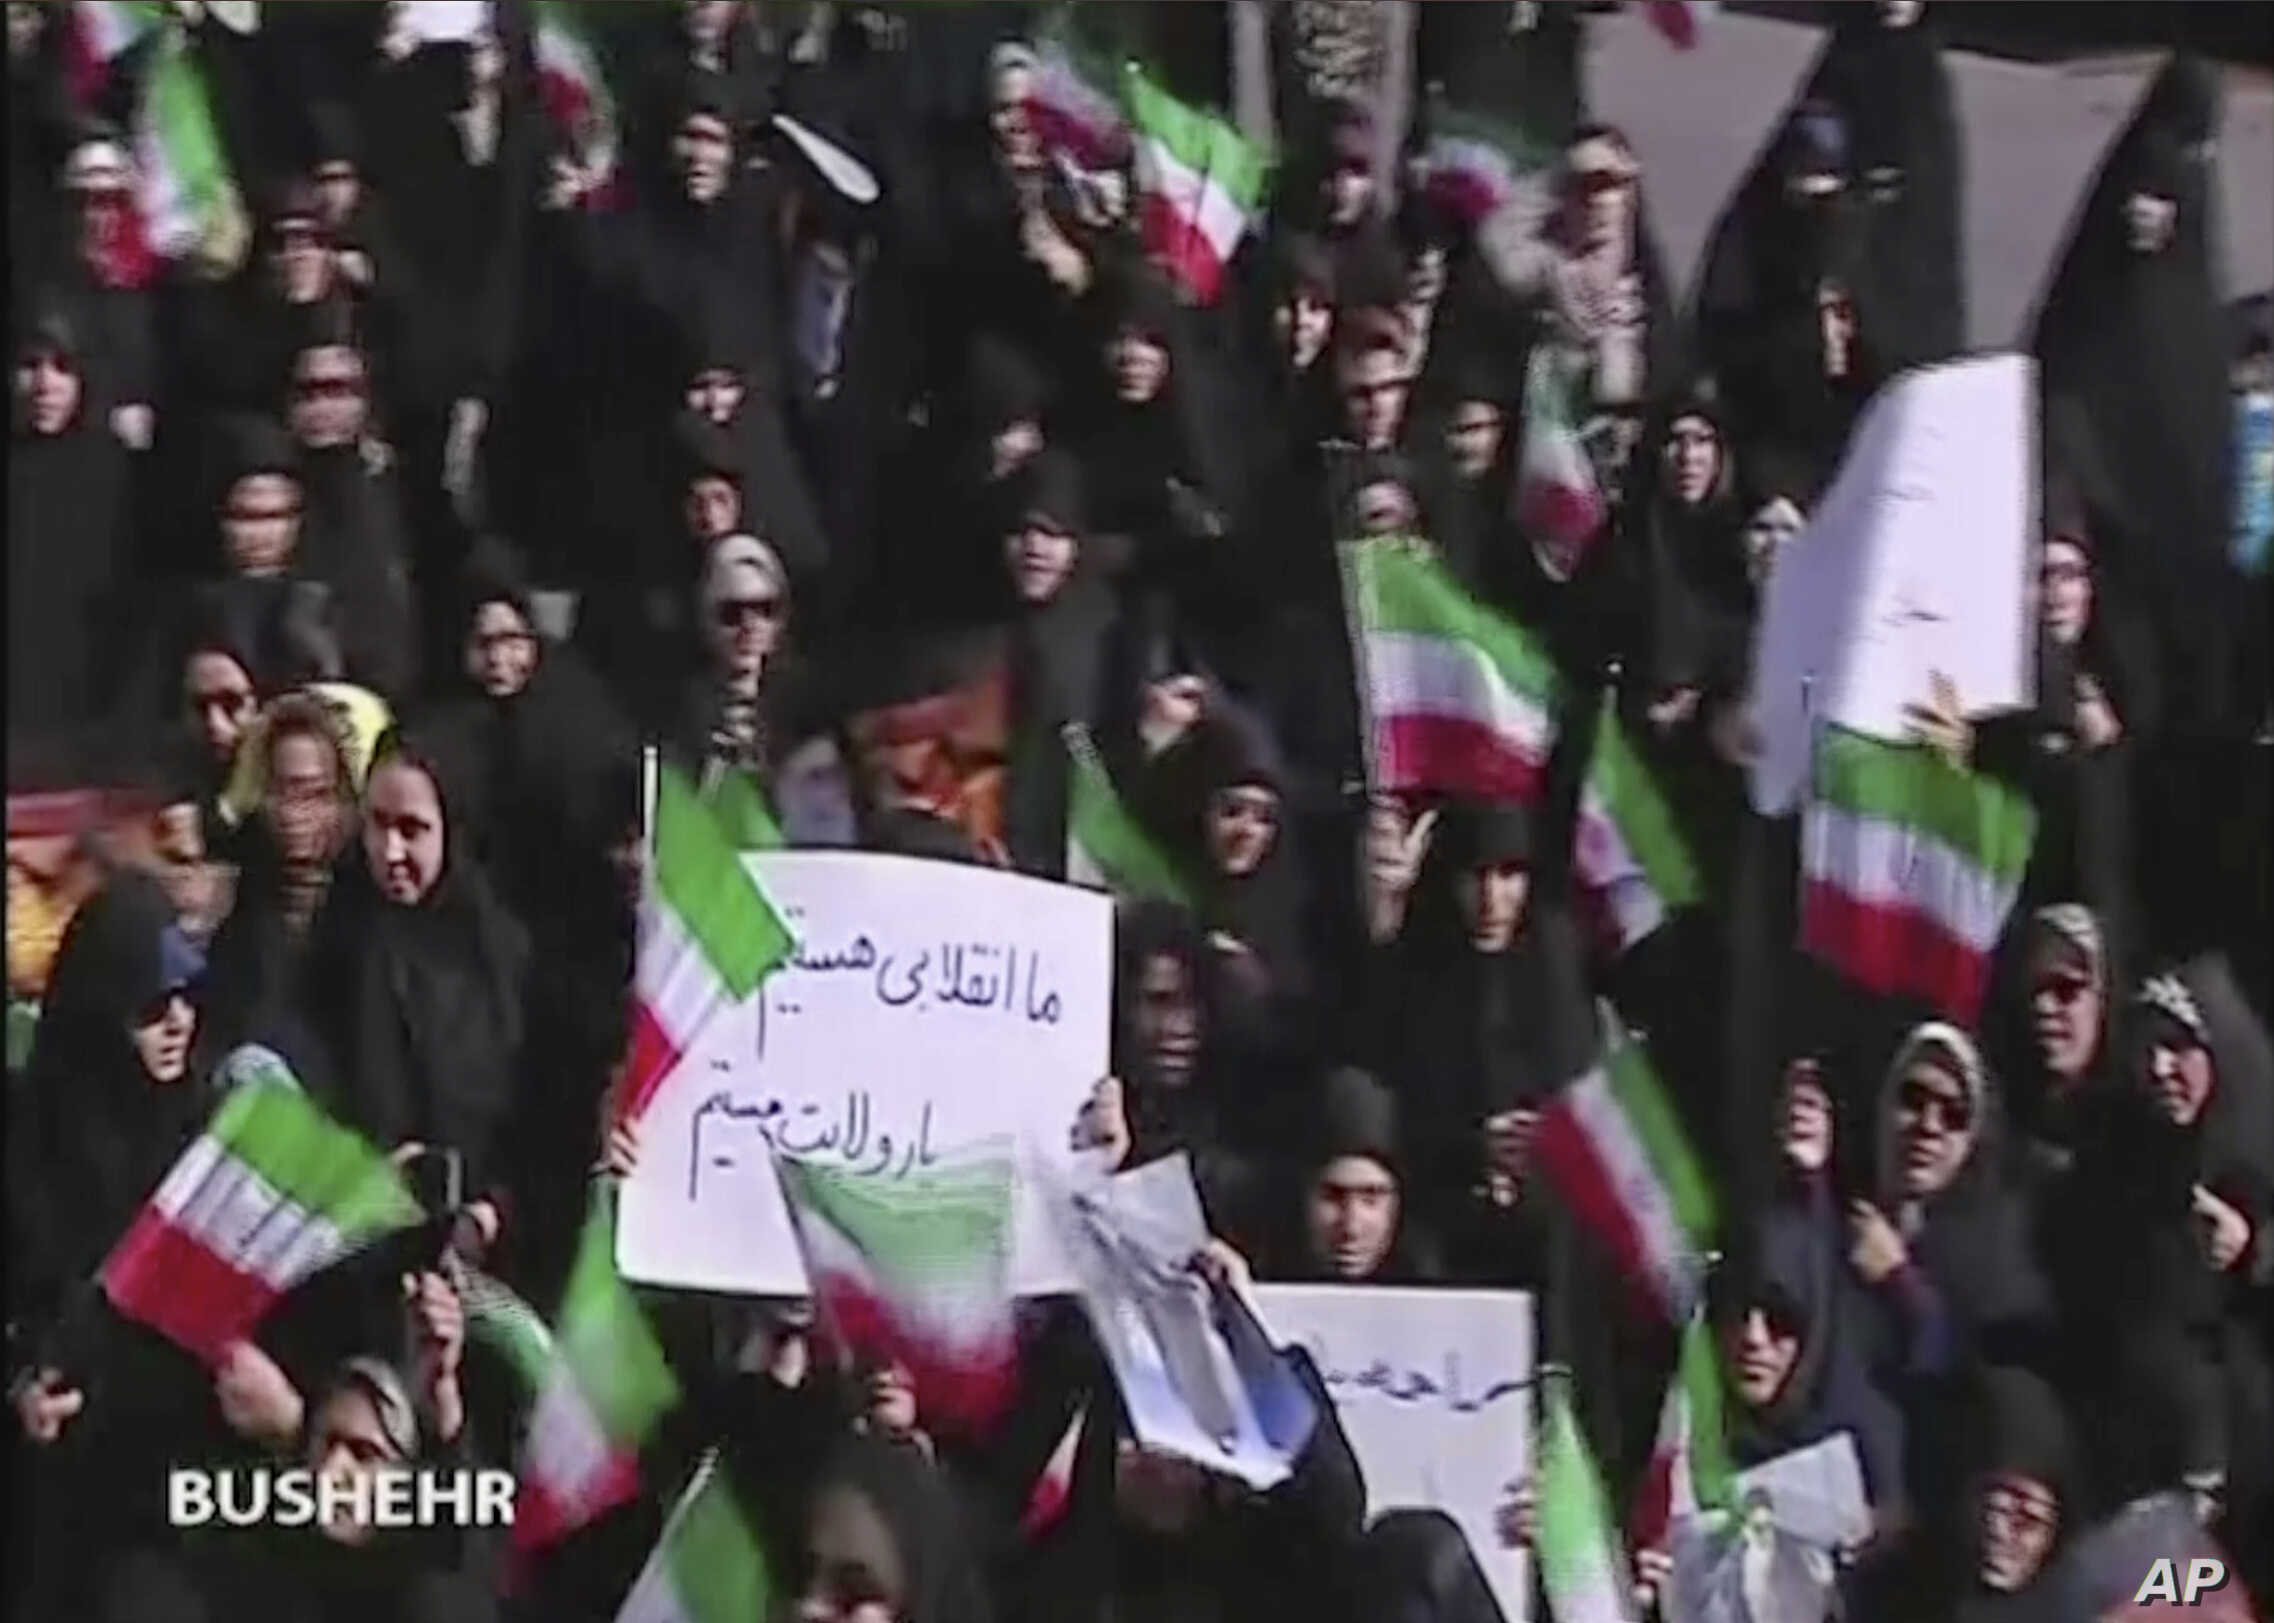 This frame grab from video provided by Iran Press, a pro-government news agency based in Beirut, shows pro-government demonstrators marching in Bushehr, Iran, Jan. 3, 2018.